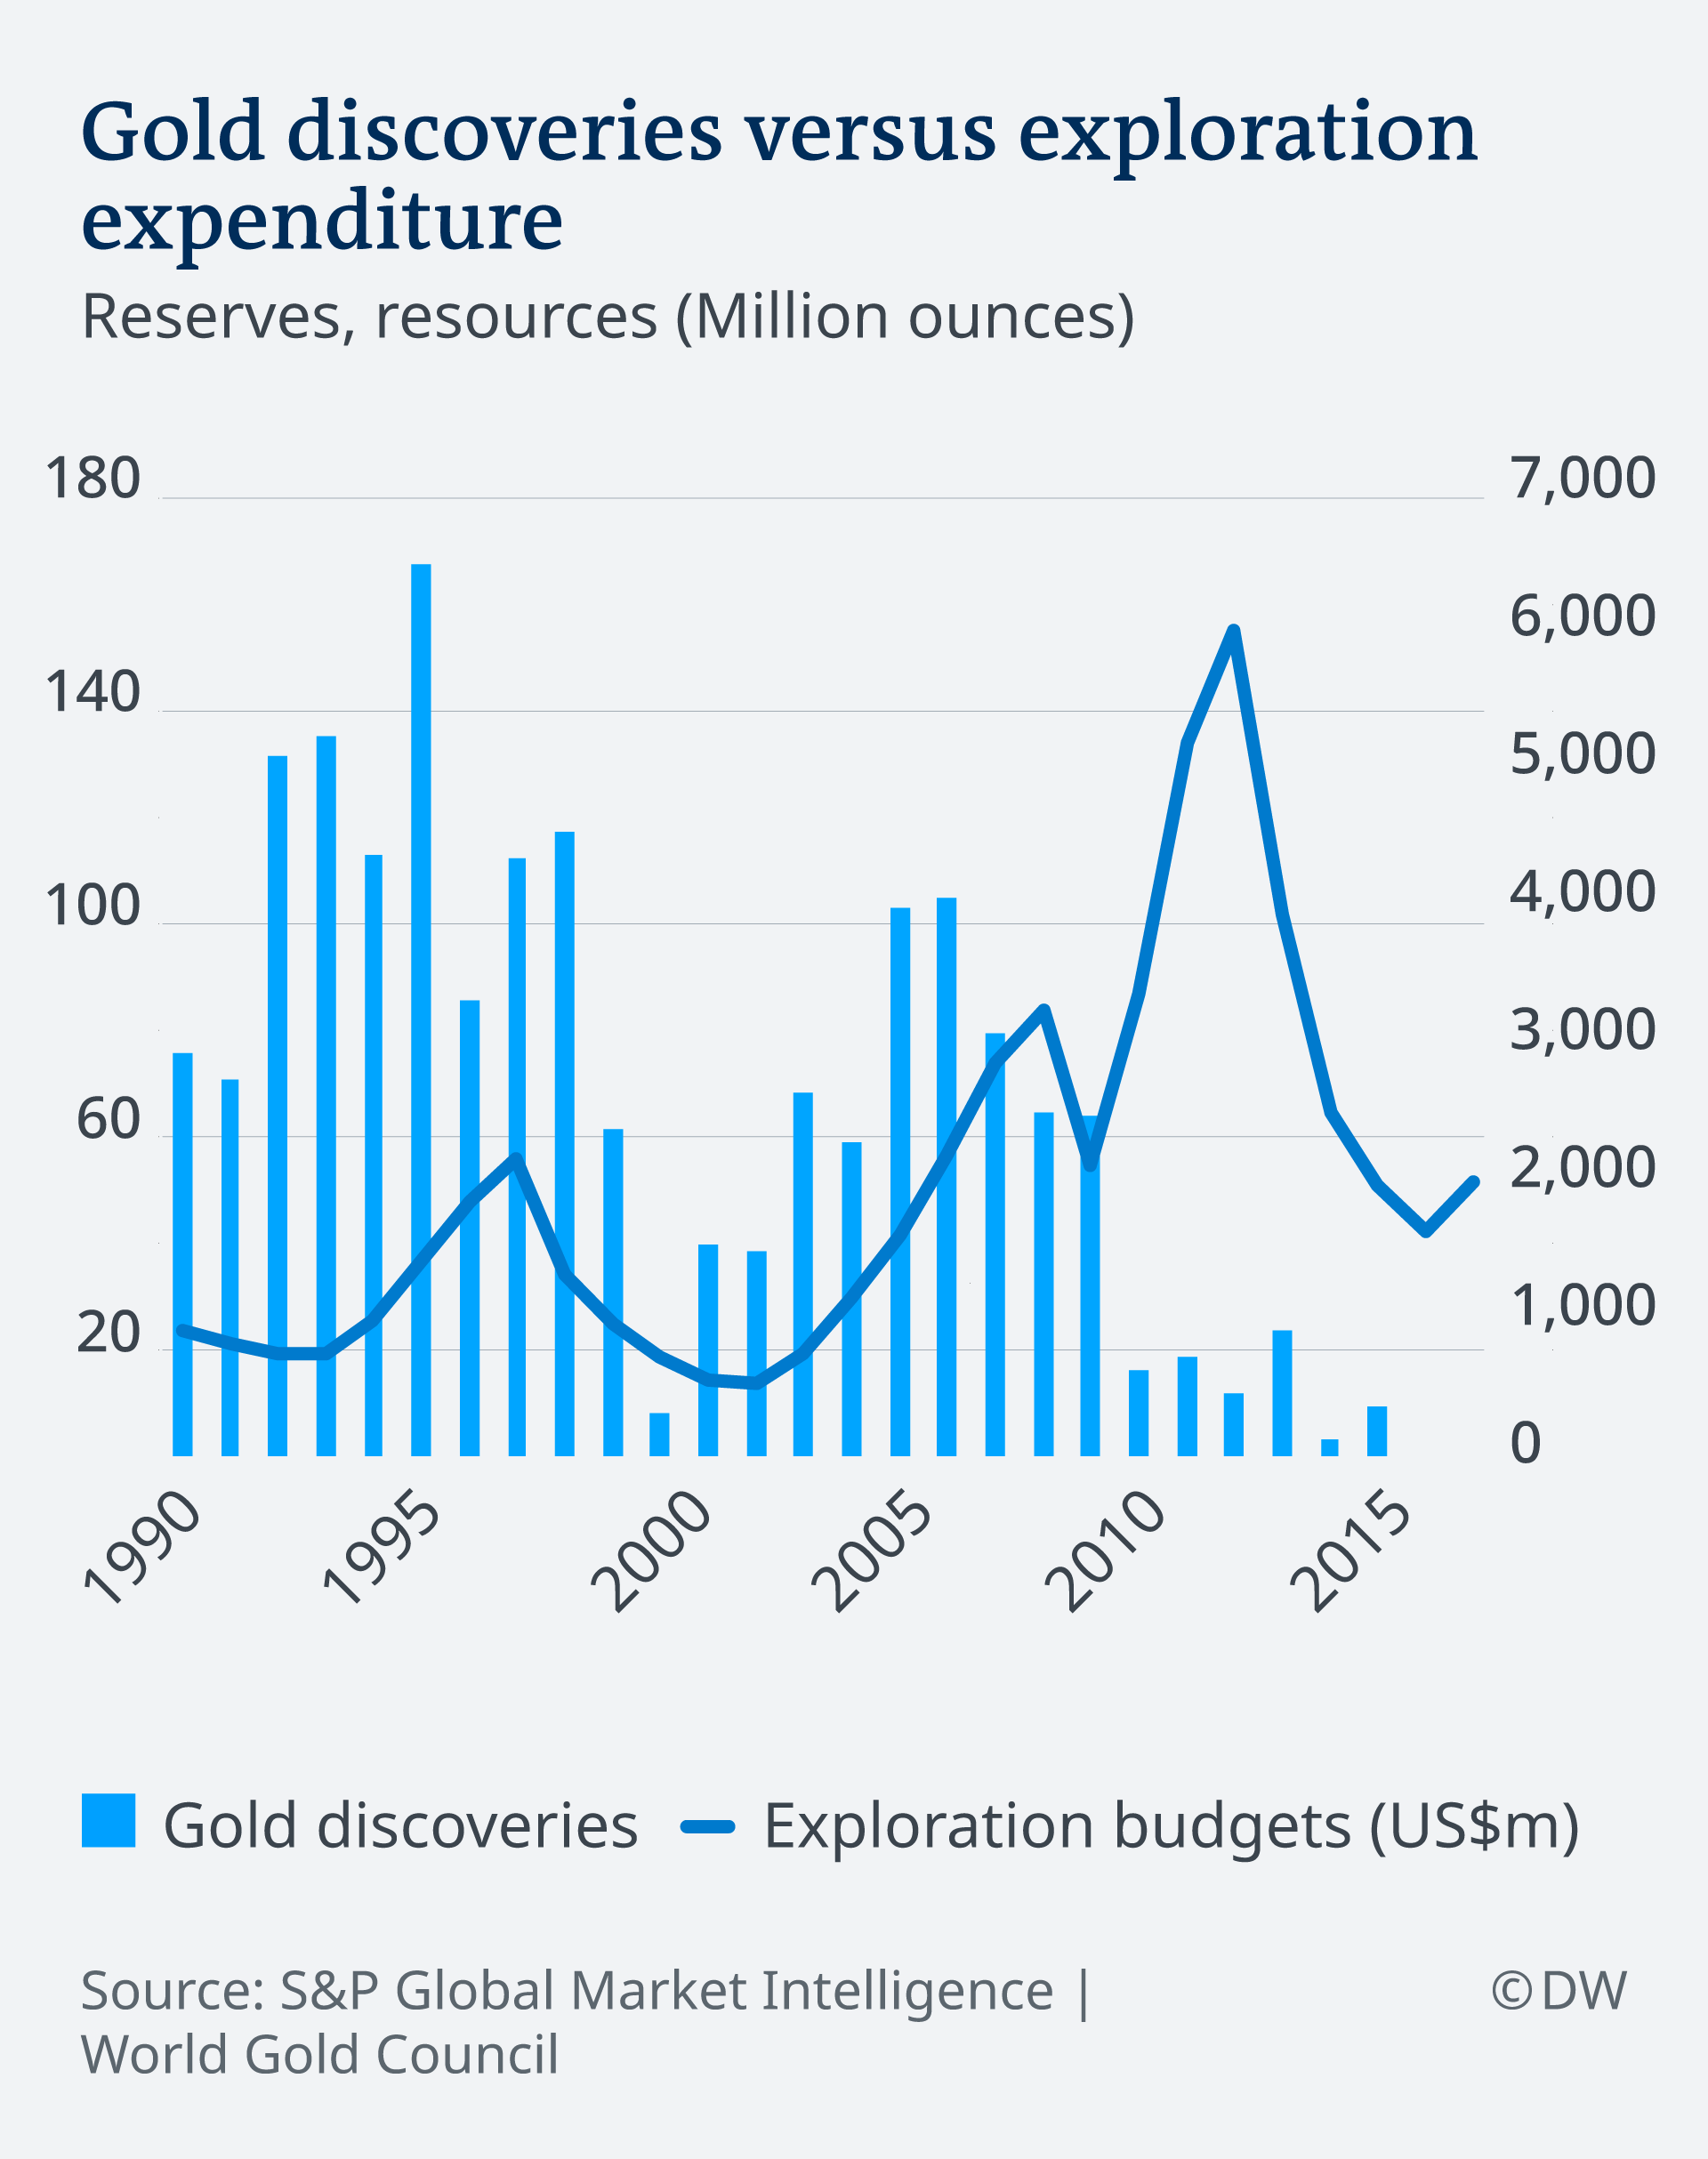 An infographic showing the relationship between gold deposit discoveries and exploration budgets